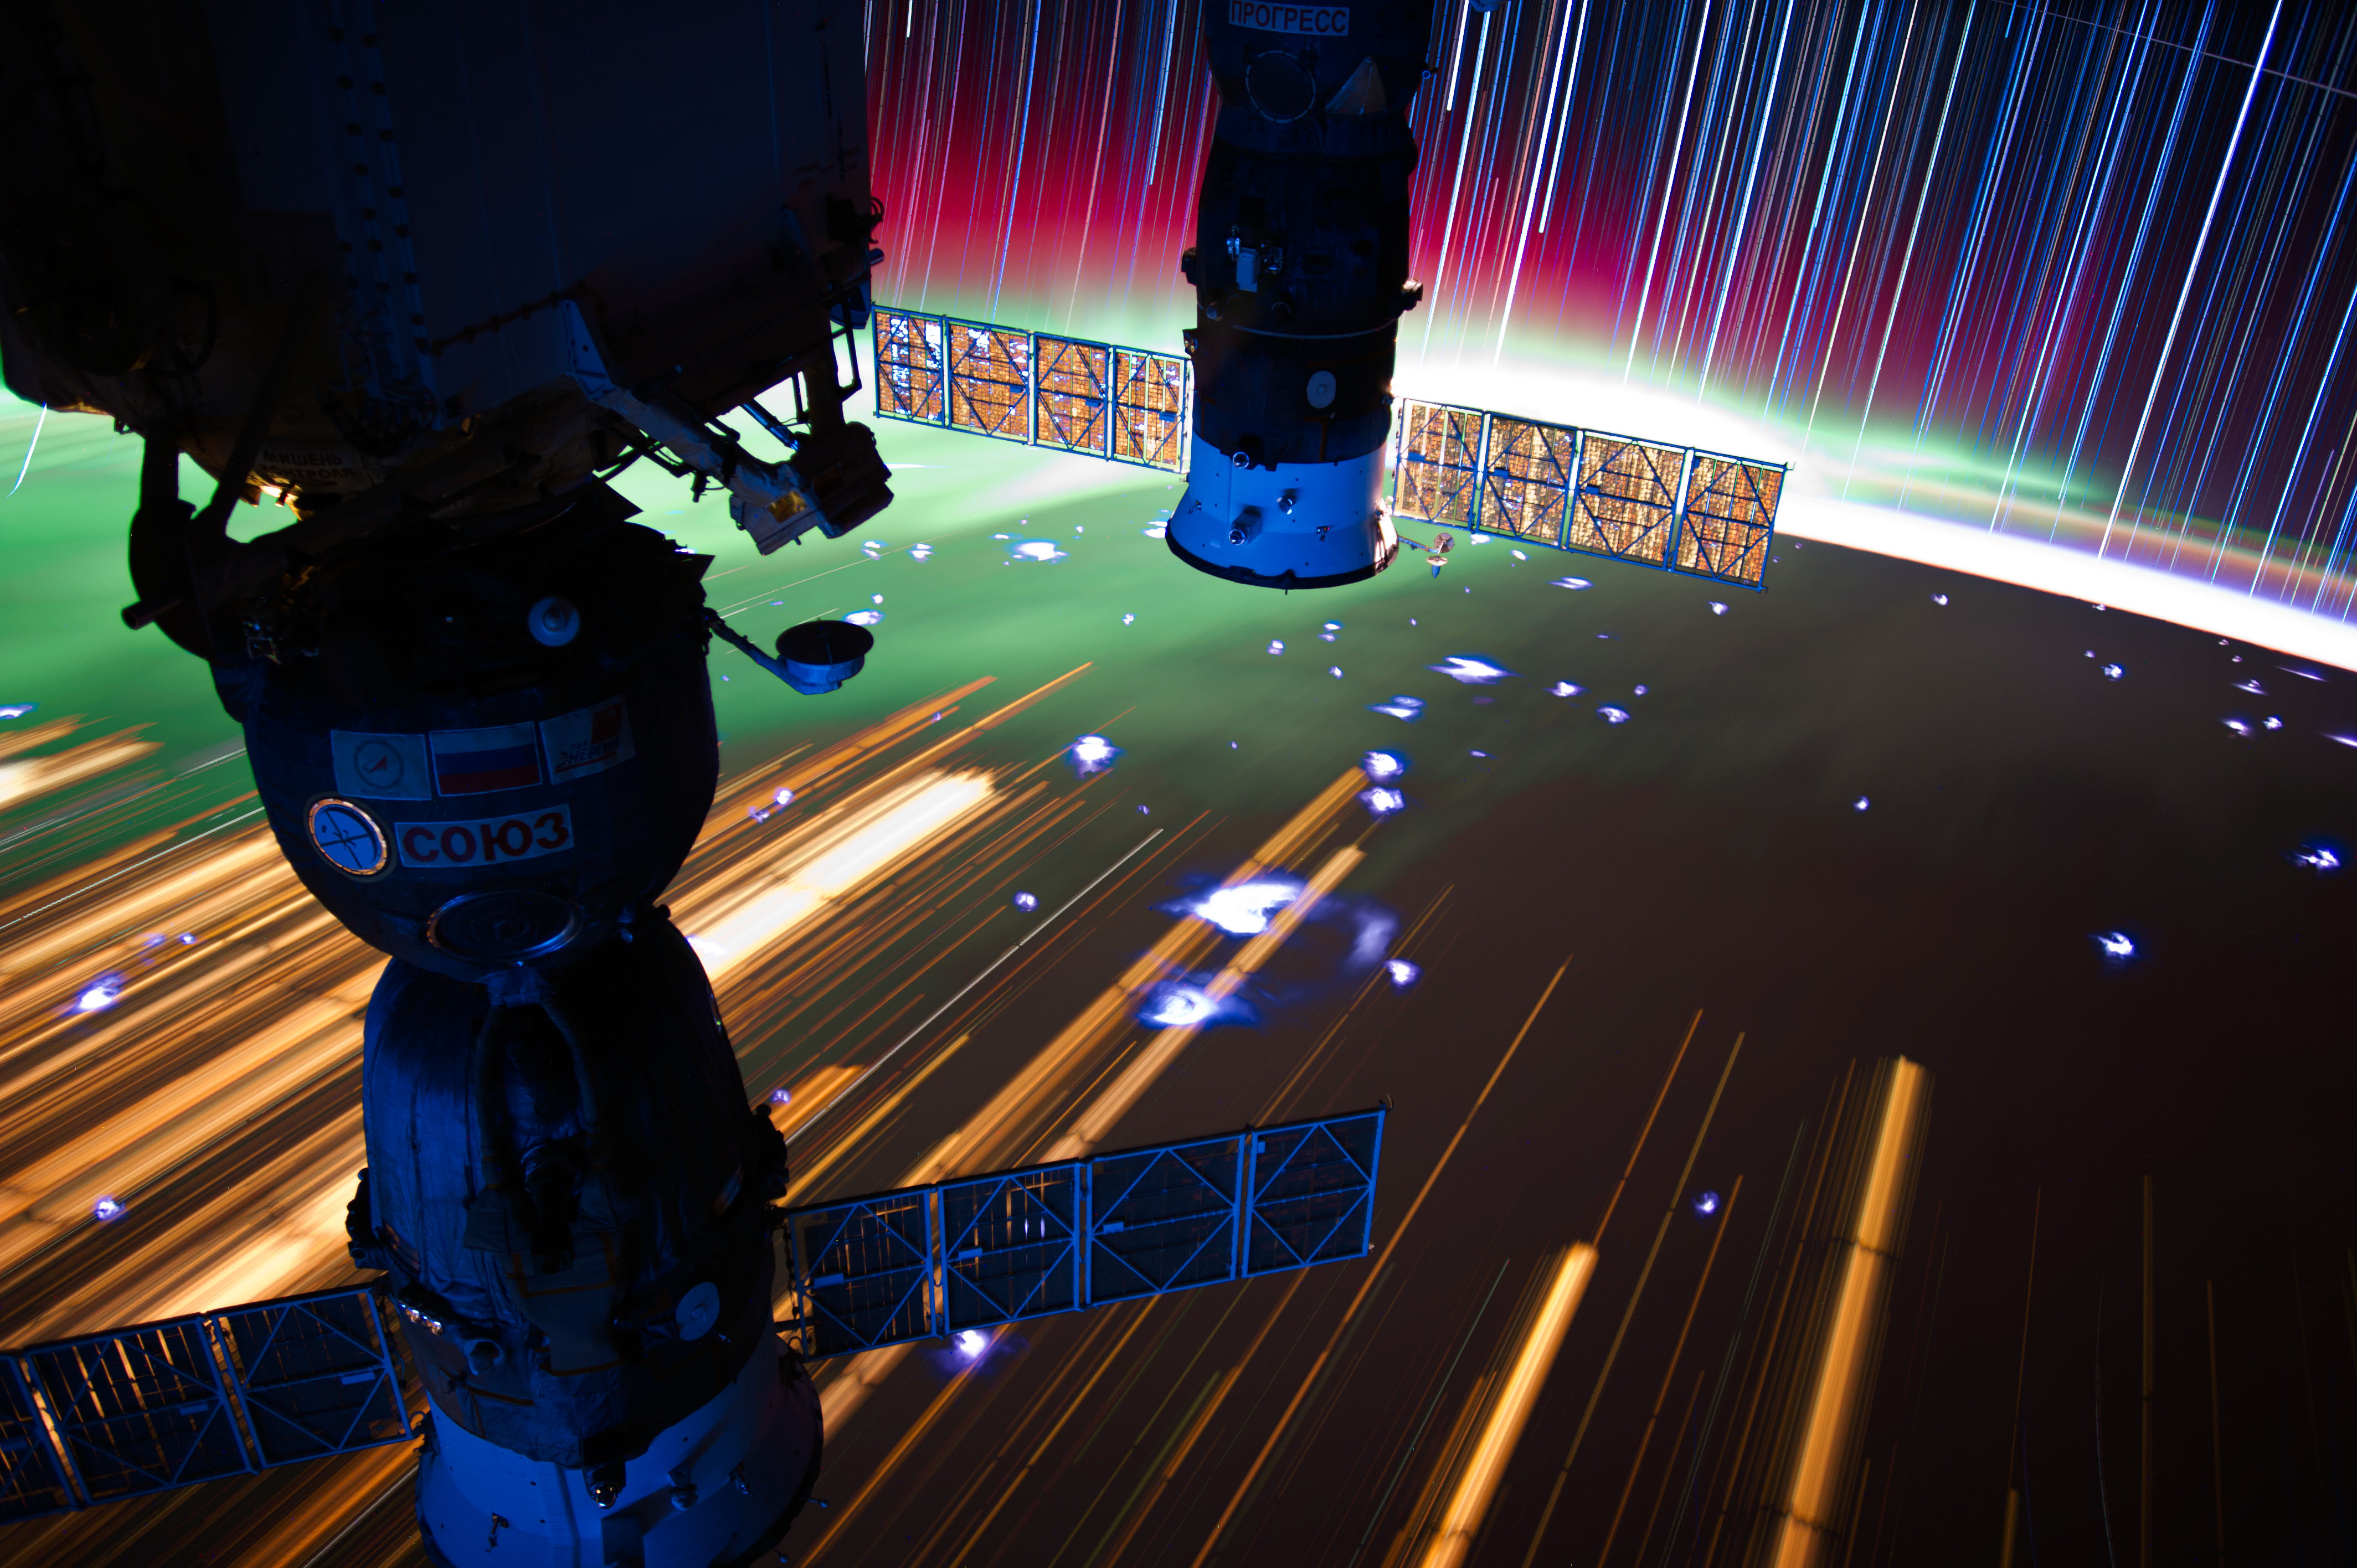 international space station photography - photo #8